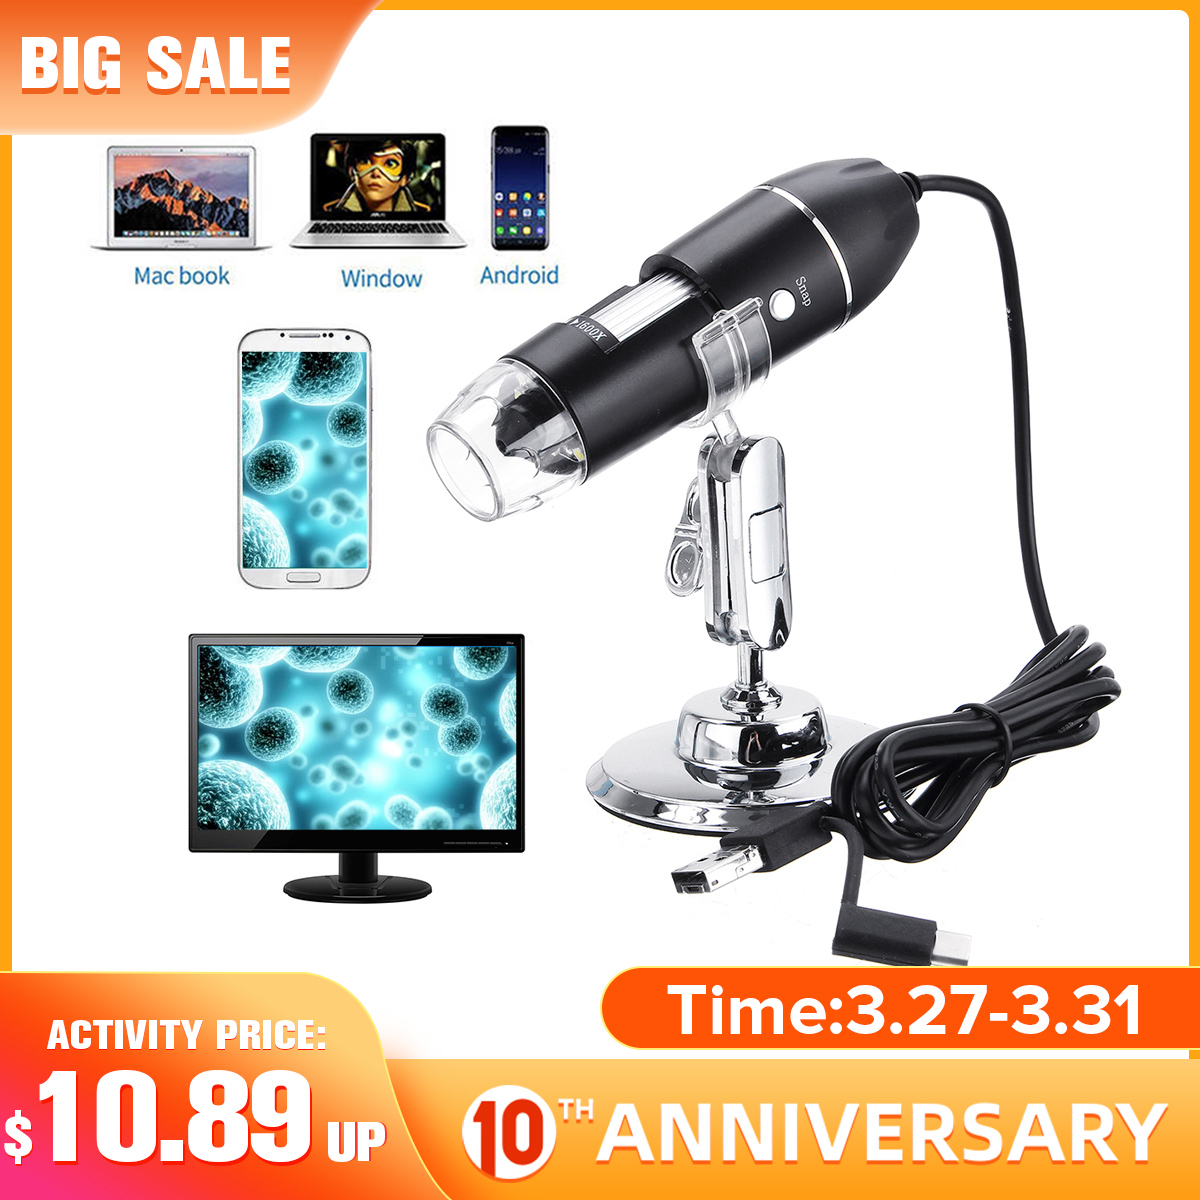 500X 1000X 1600X 3 In 1 New Portable USB Type-c Handheld Digital Microscope 8 LED Endoscope USB Zoom Magnifier Camera Stand